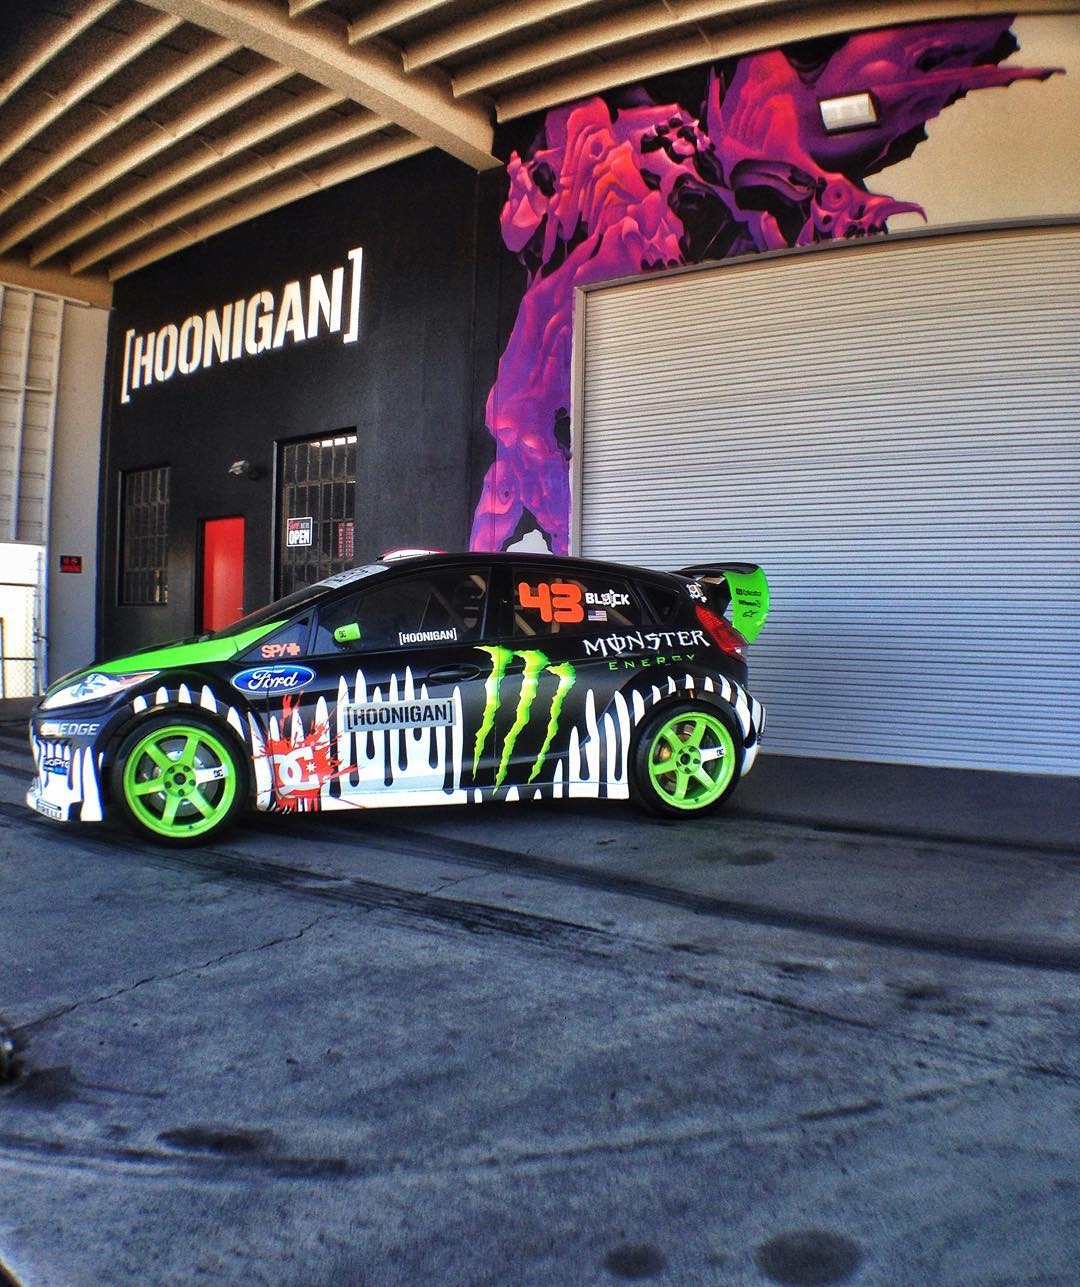 The Gymkhana 3 car was really cramping the lunch room at the #donutgarage so figured we'd put it out on display for anyone who comes to the #HNGNBakery today. #opentill7